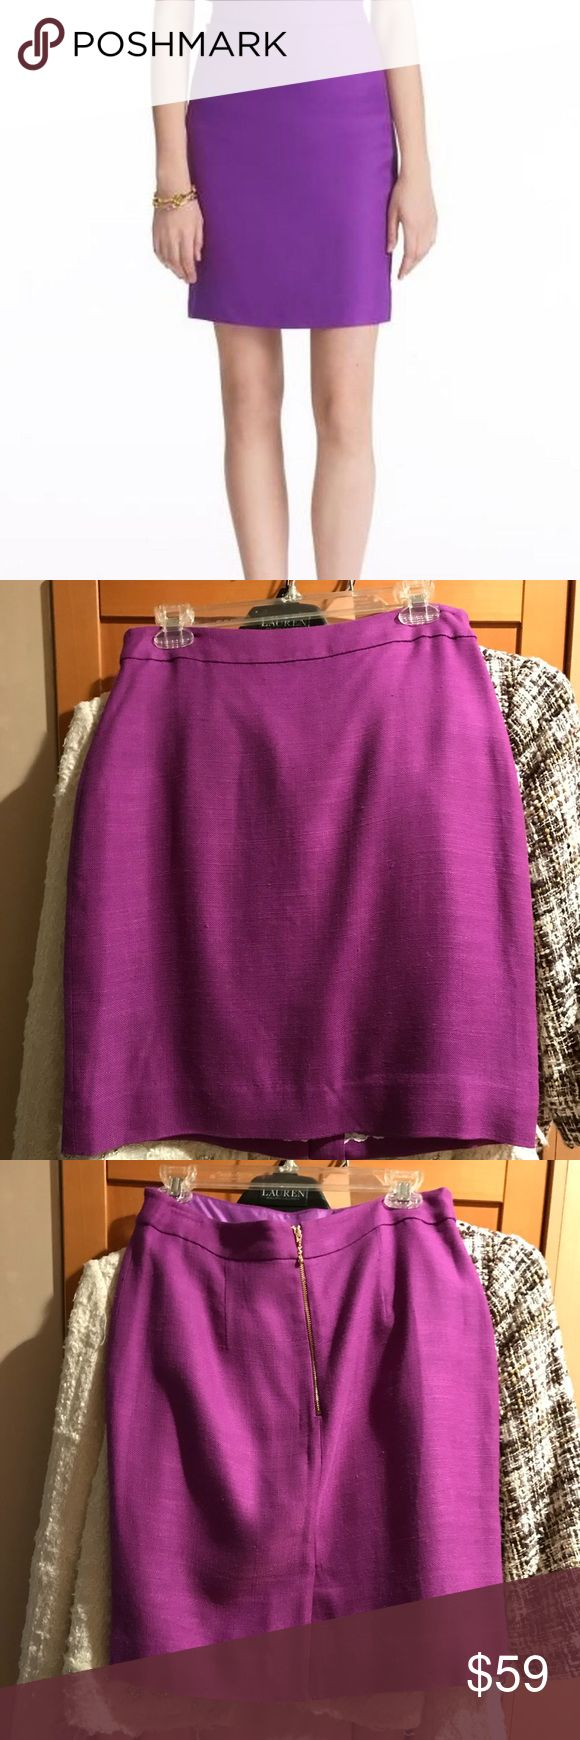 💯 Kate Spade Judy Skirt For work or for pleasure! You'll look radiant no matter where when you wear the Kate Spade Judy Skirt. Purple tweed. Exposed gold zipper down back center. Back vent. Darting details at back. Fully lined. Shell 100% viscose. Lining 100% polyester. Dry clean only. Full Retail Price $278 kate spade Skirts